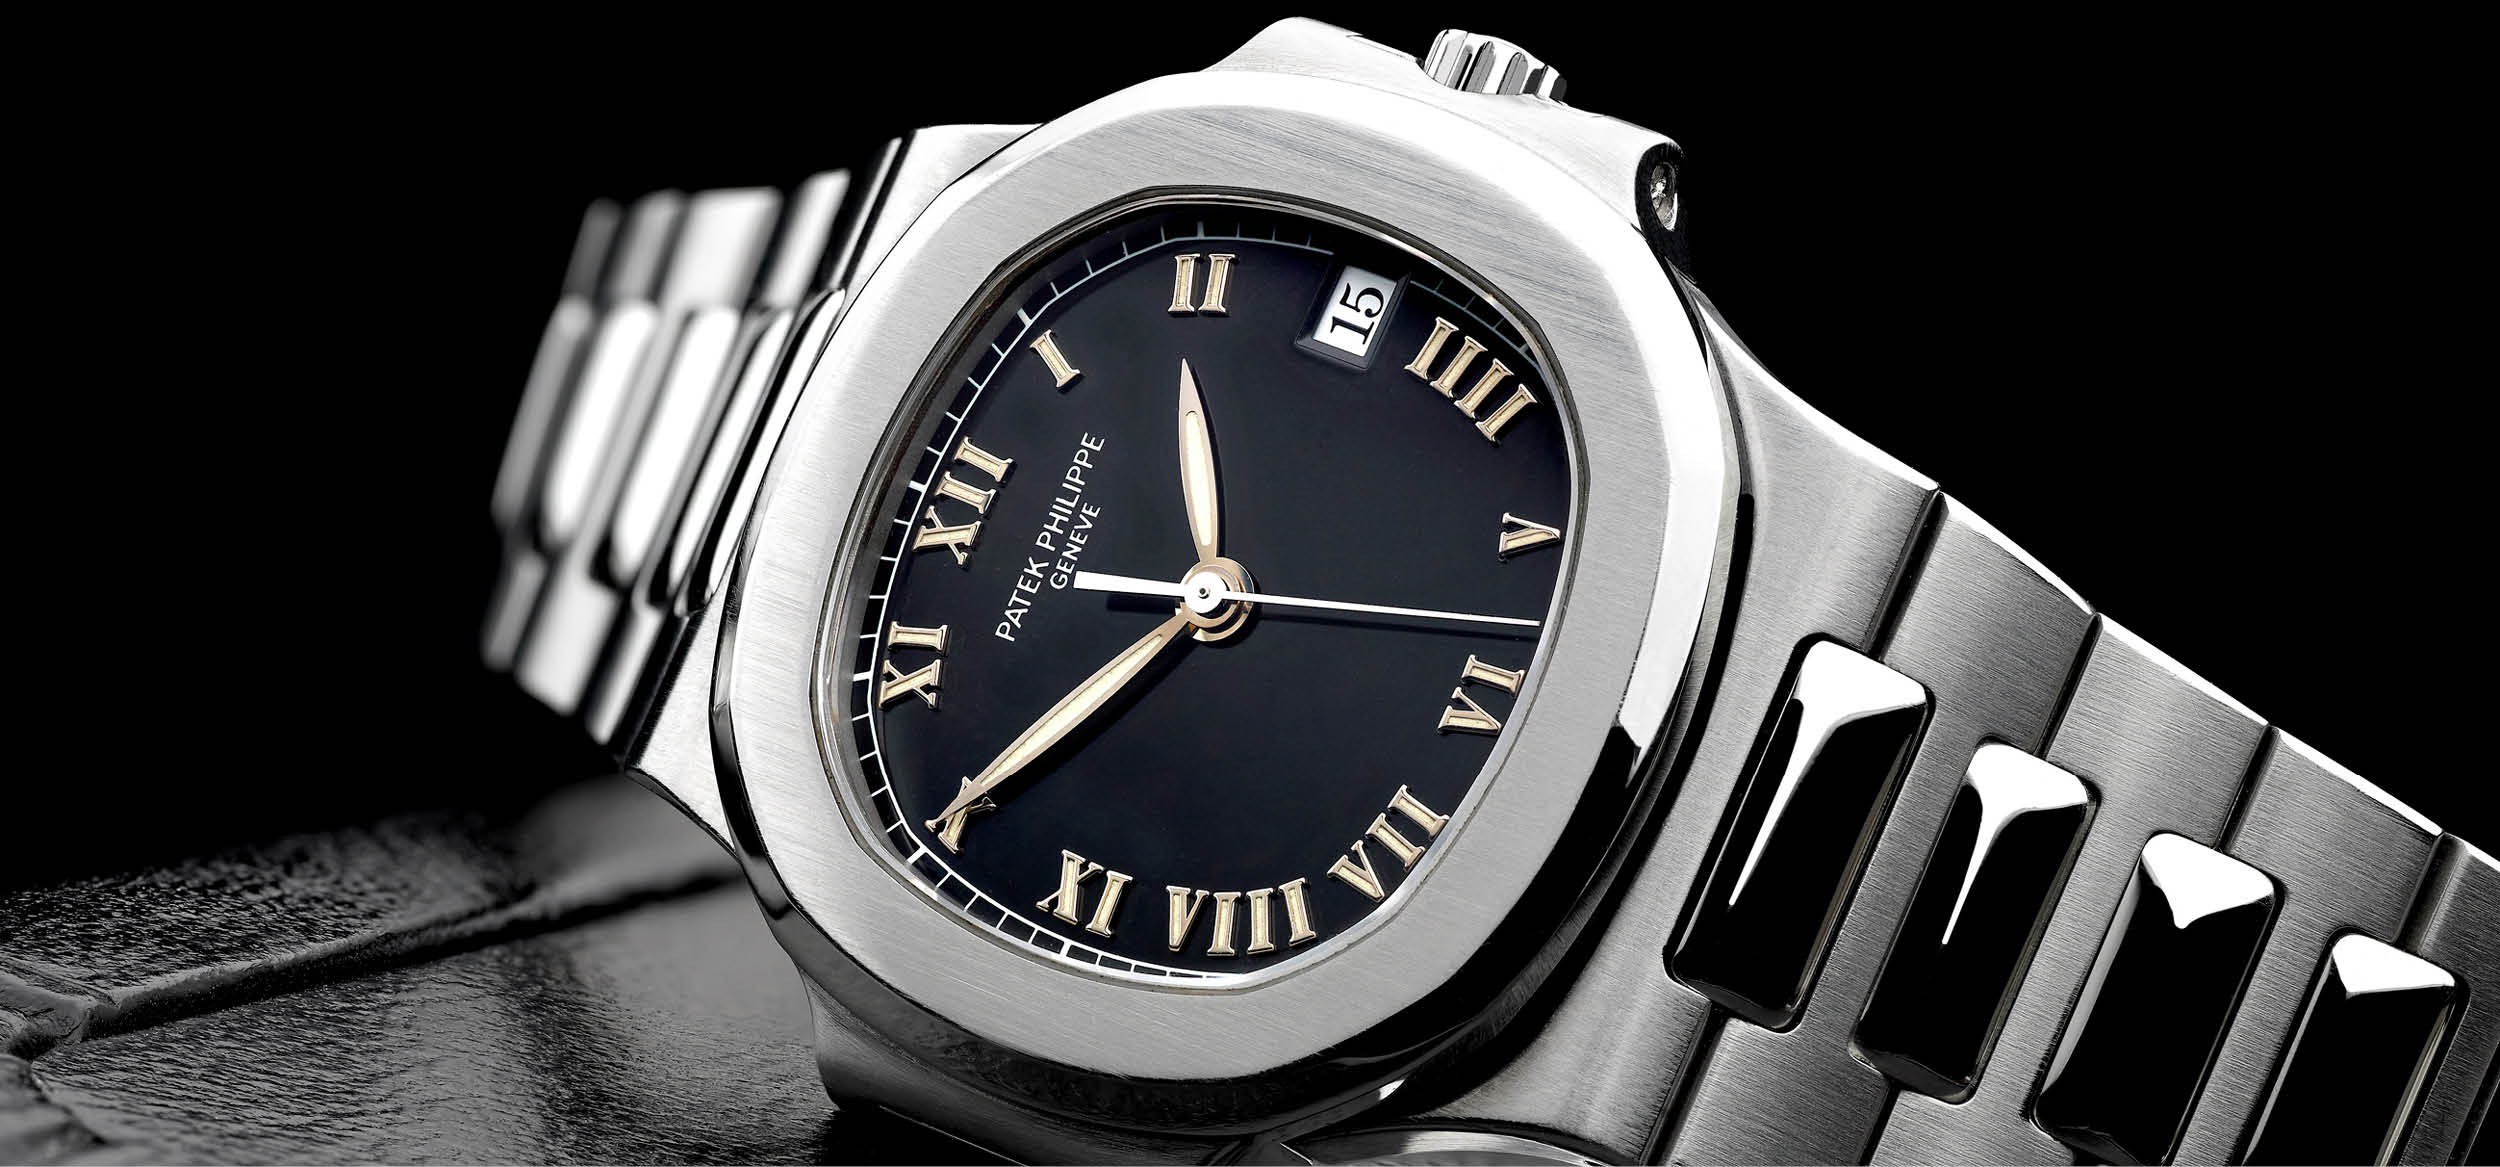 The Cool and Masculine Patek Philippe Nautilus Full Steel Replica Watch